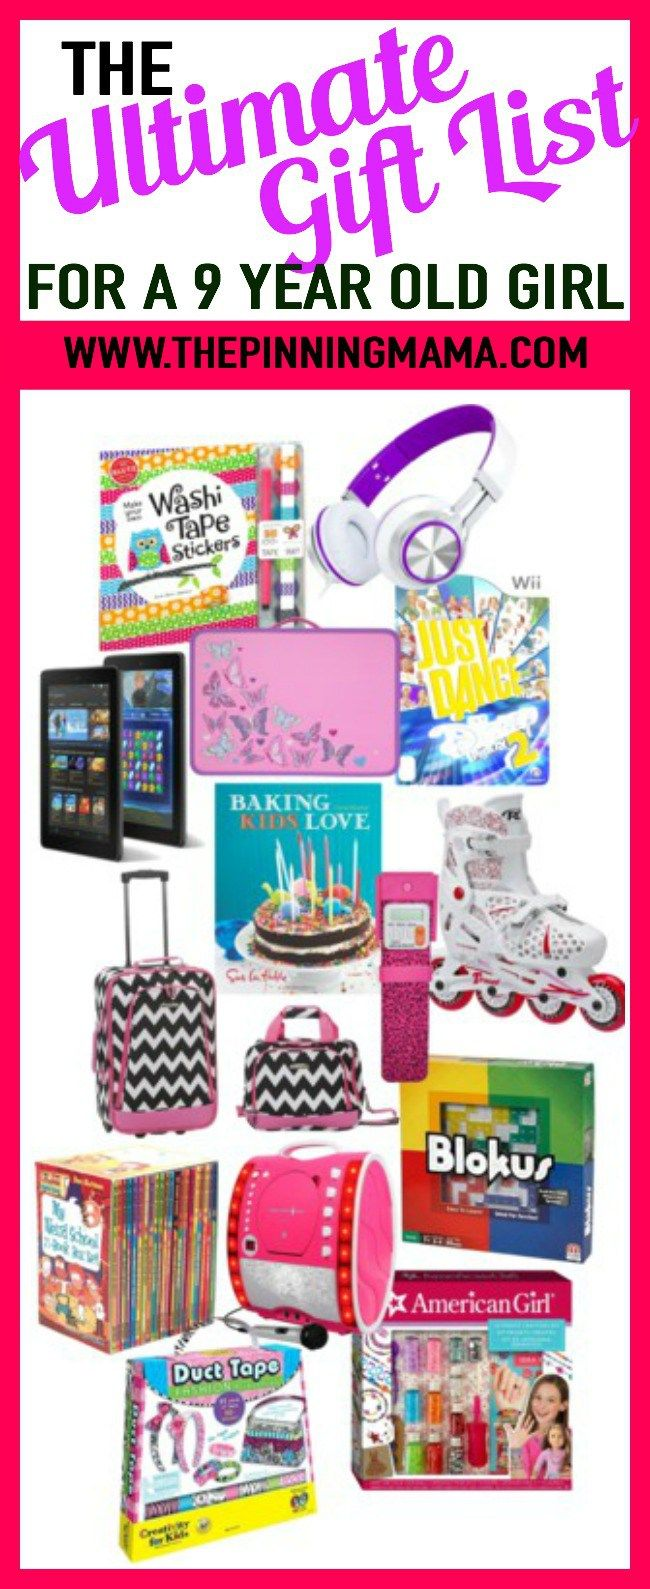 The ultimate list of gift ideas for a 9 year old girl- see 25+ of the best gift ideas put together by 2 moms with 6 kids between them! Presents for birthday or Christmas and anything in between that your 9 year old is sure to love!!